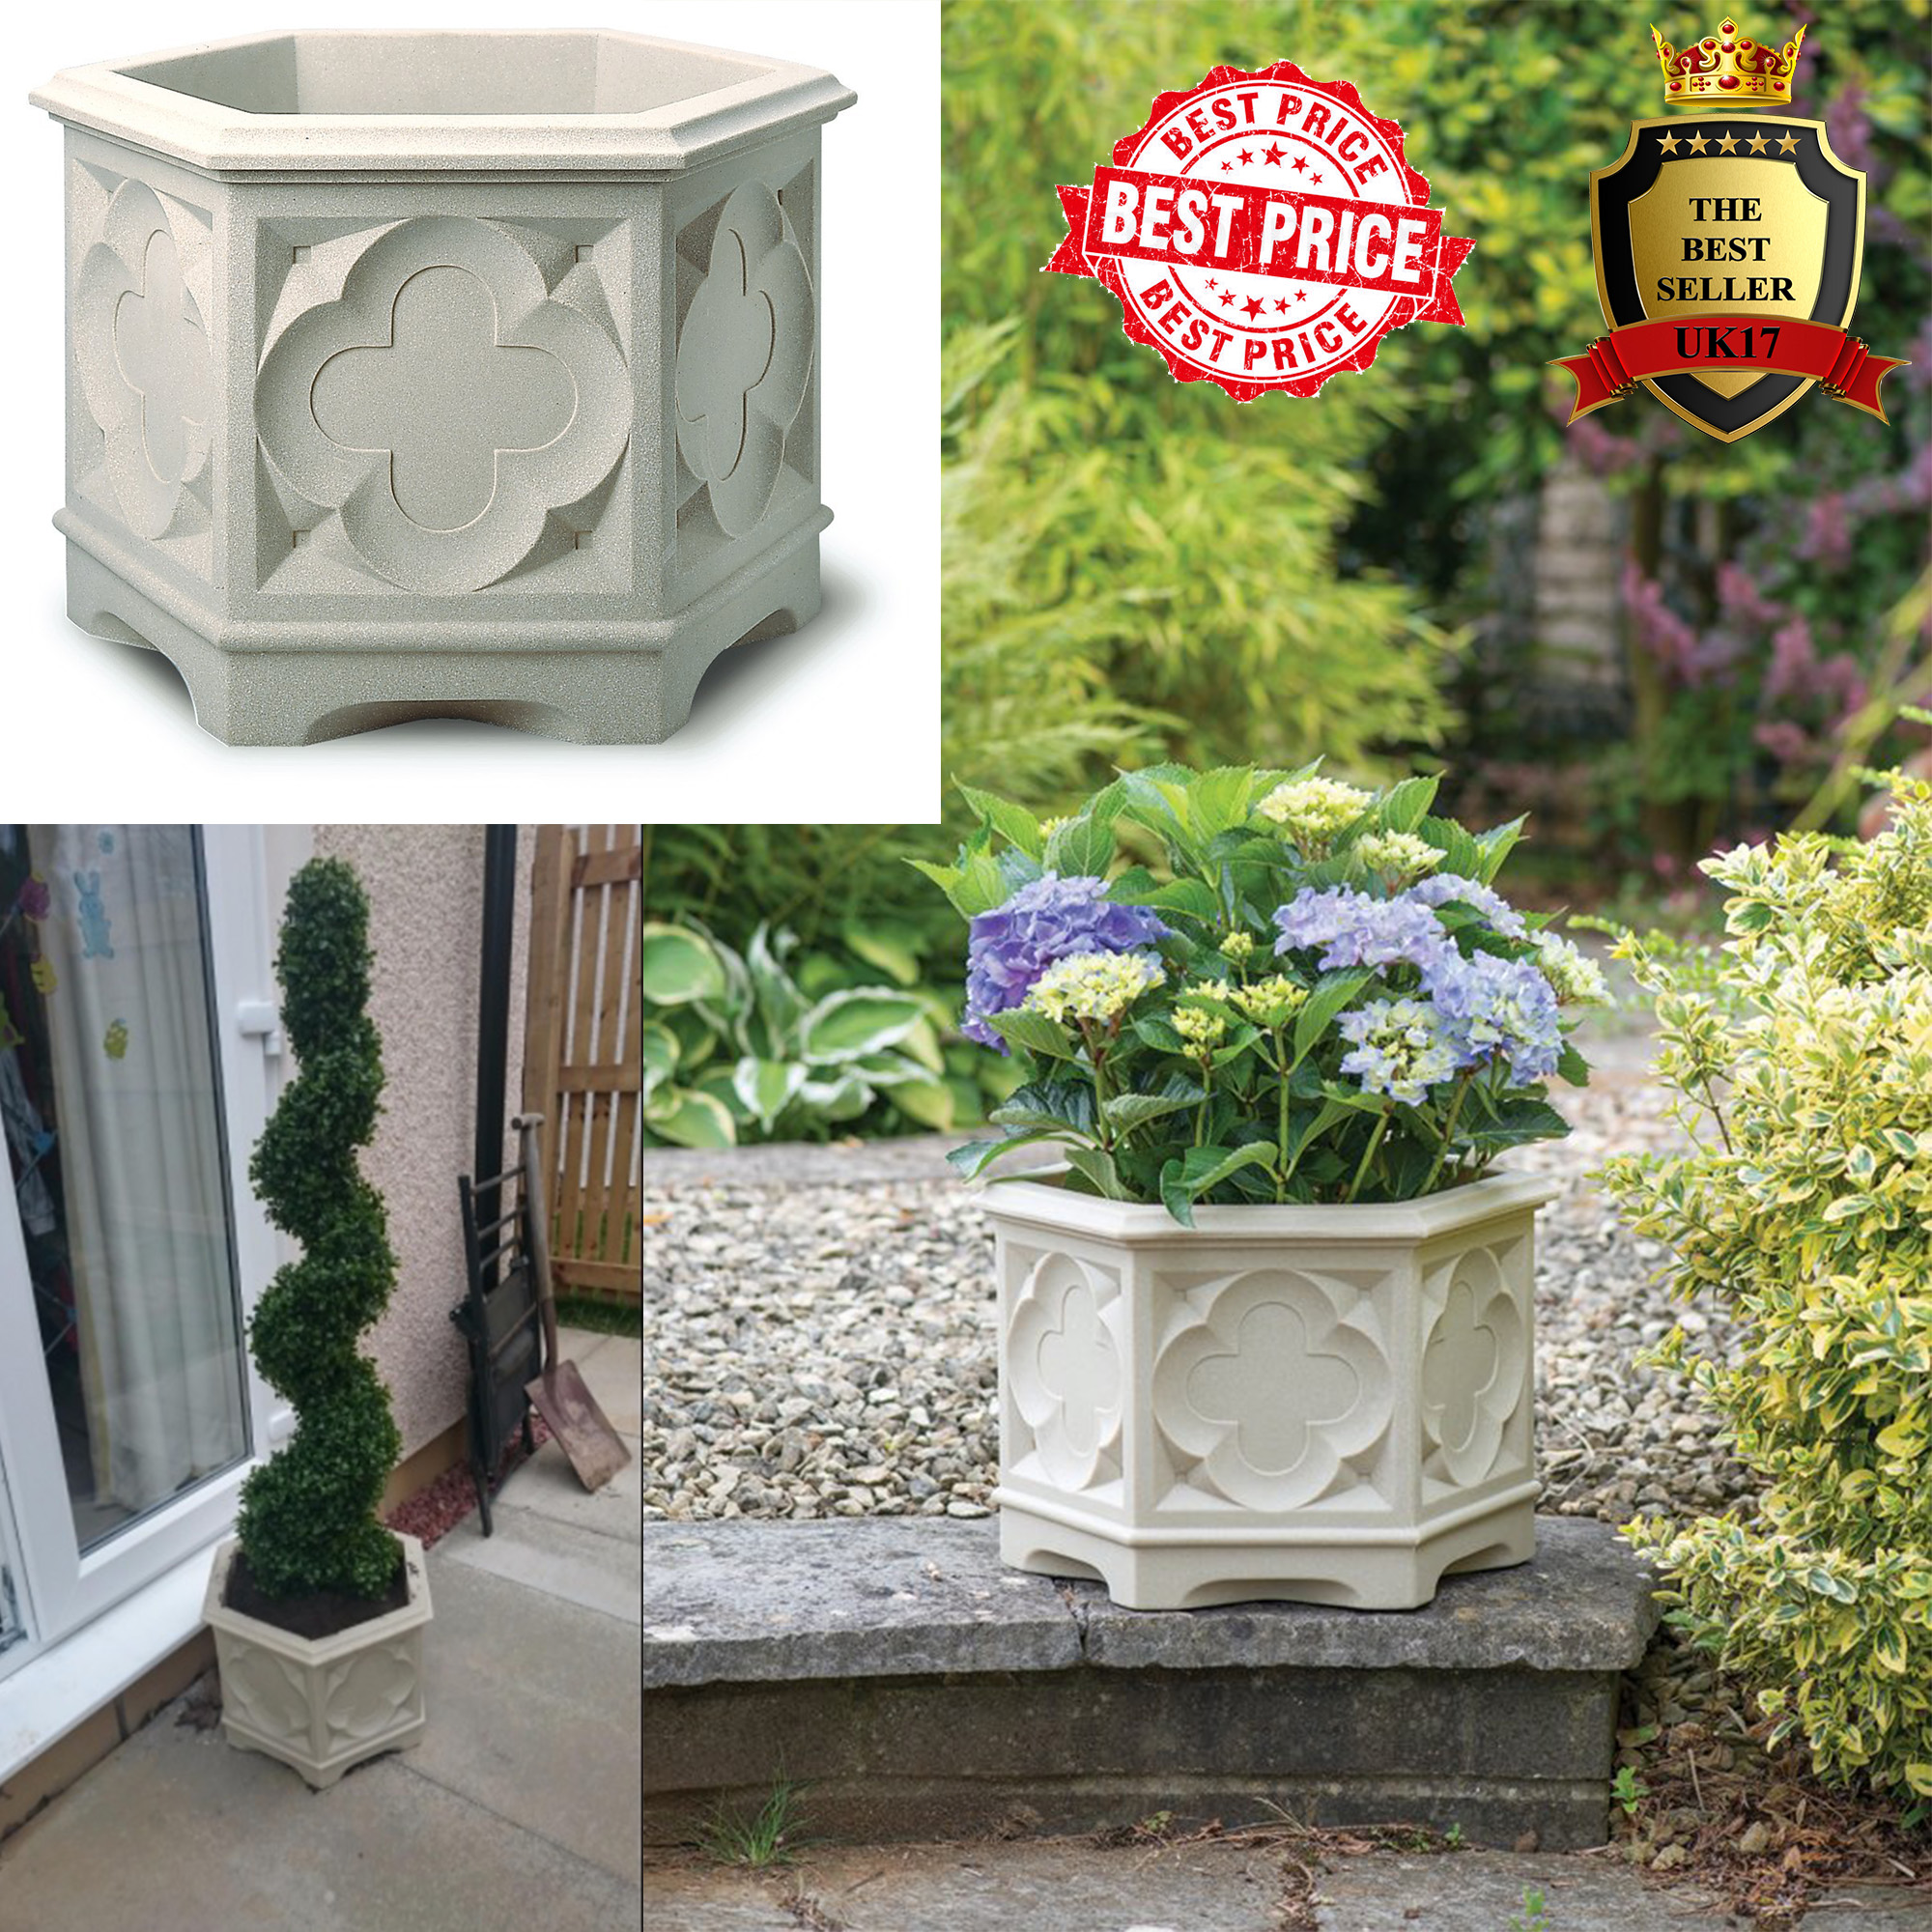 Outdoor outside garden planter large stone decorative for Large outdoor decorative rocks